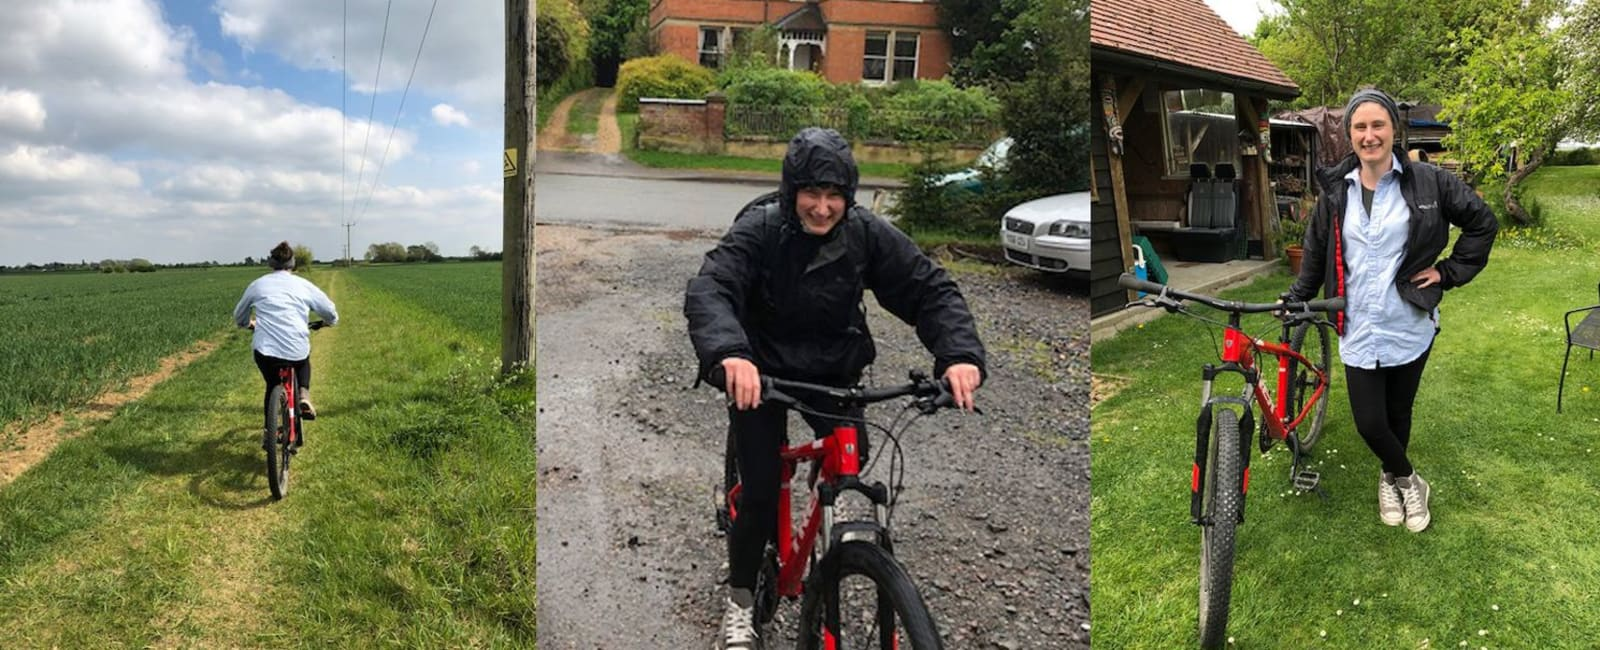 Hannah Carr doing her 26 mile bike ride in all weathers